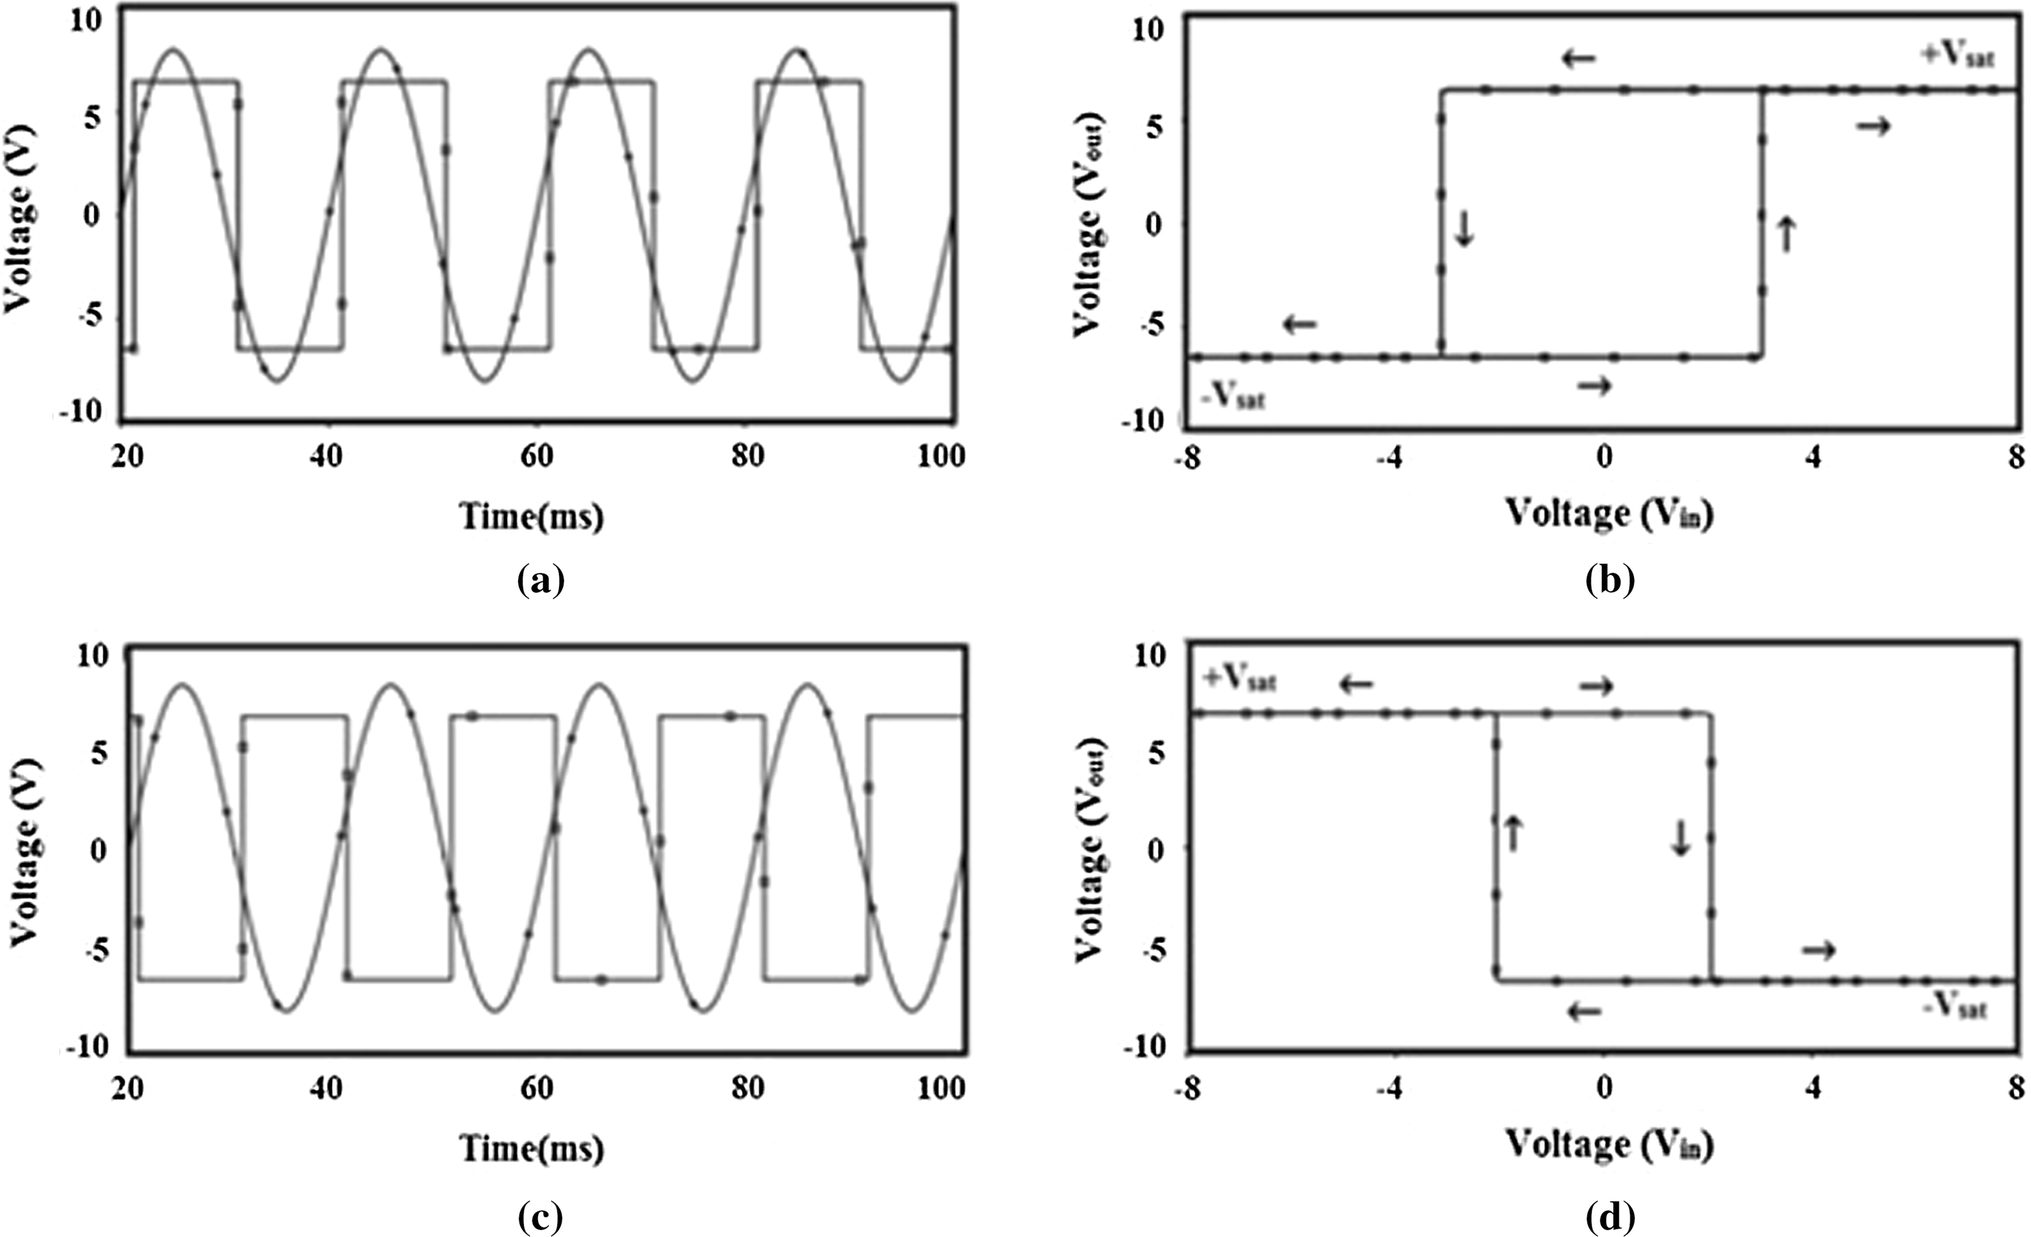 A Novel Schmitt Trigger And Its Application Using Single Four Voltage Controlled Low Pass Filter With Lm13600 Ota Circuit Schematic Open Image In New Window